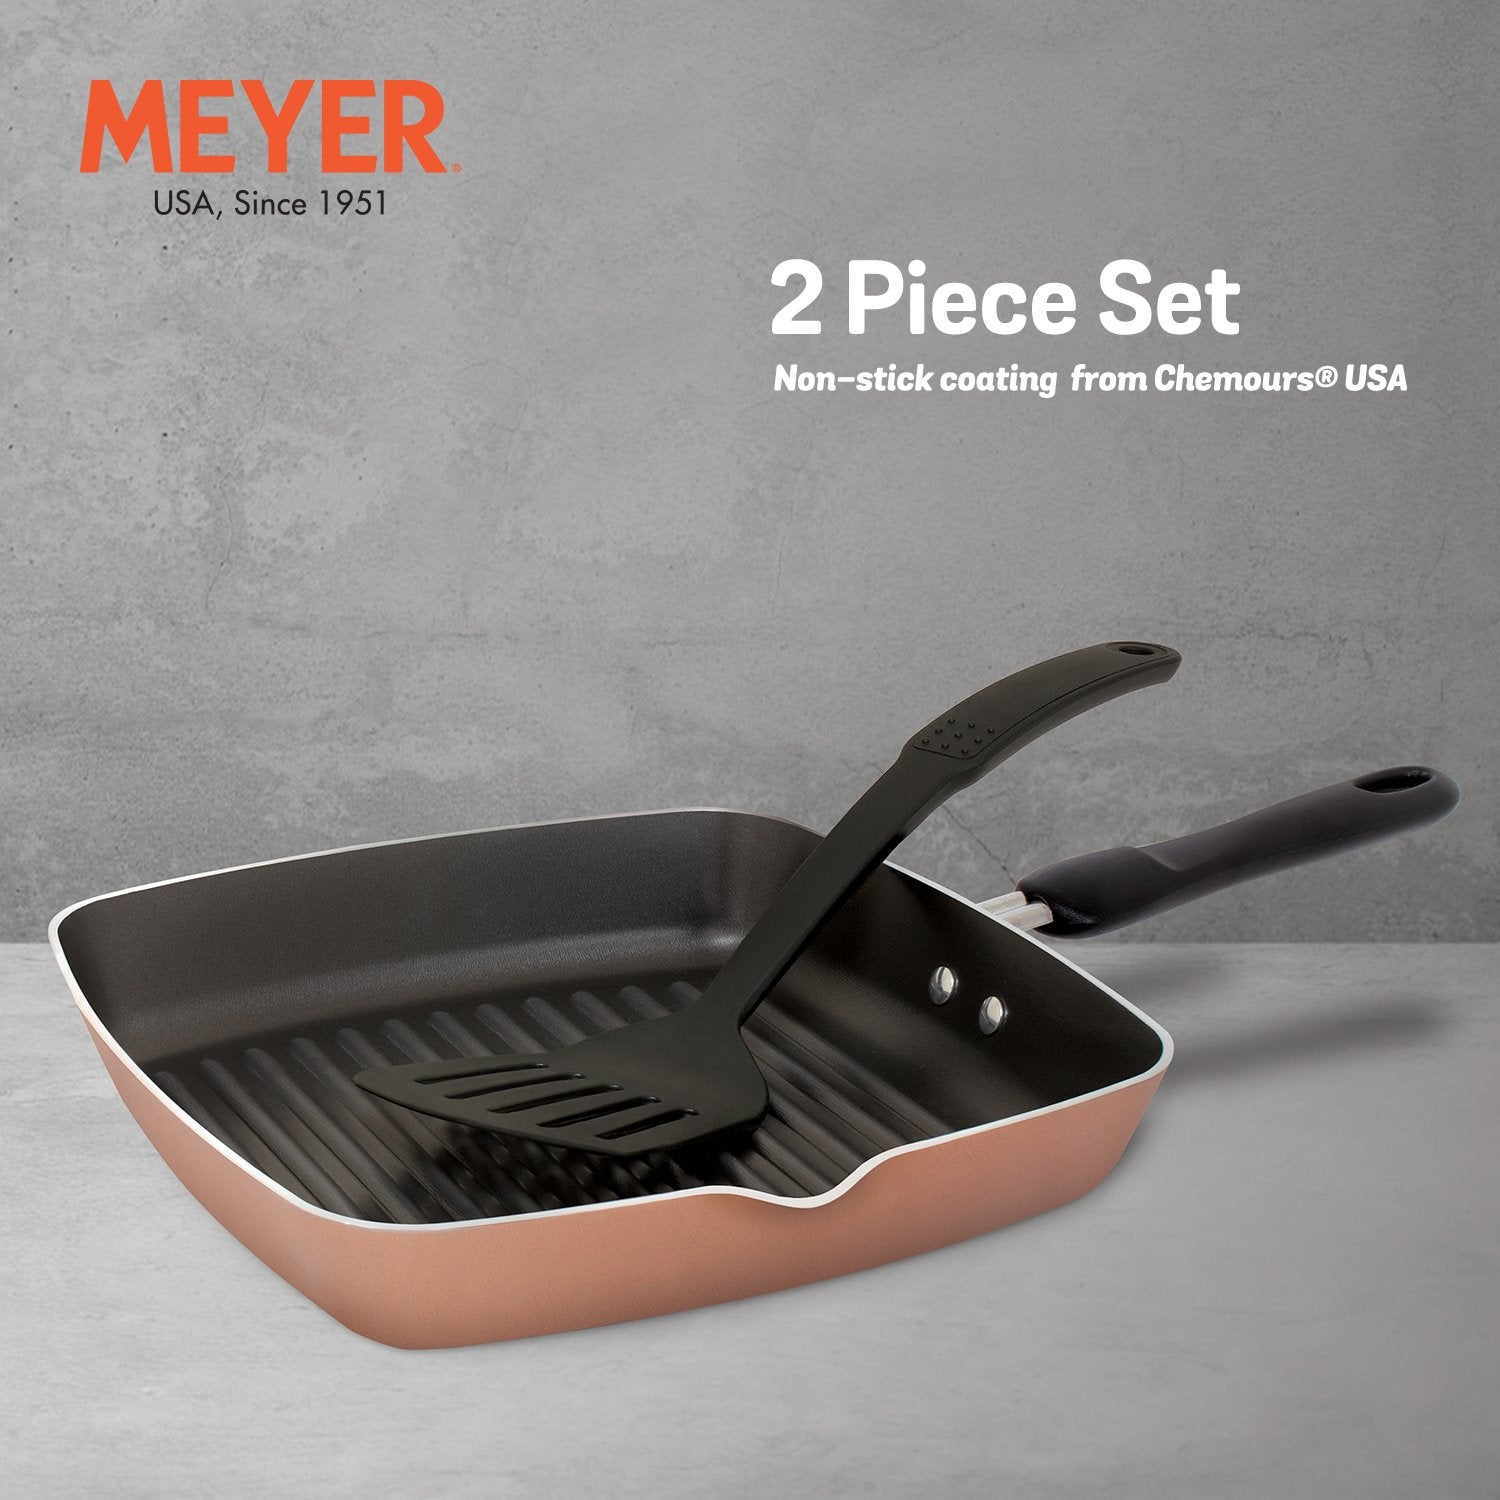 Meyer Non-Stick 2-Piece Cookware Set, Grillpan With Accessory (Suitable For Gas & Electric Cooktops) - Pots and Pans